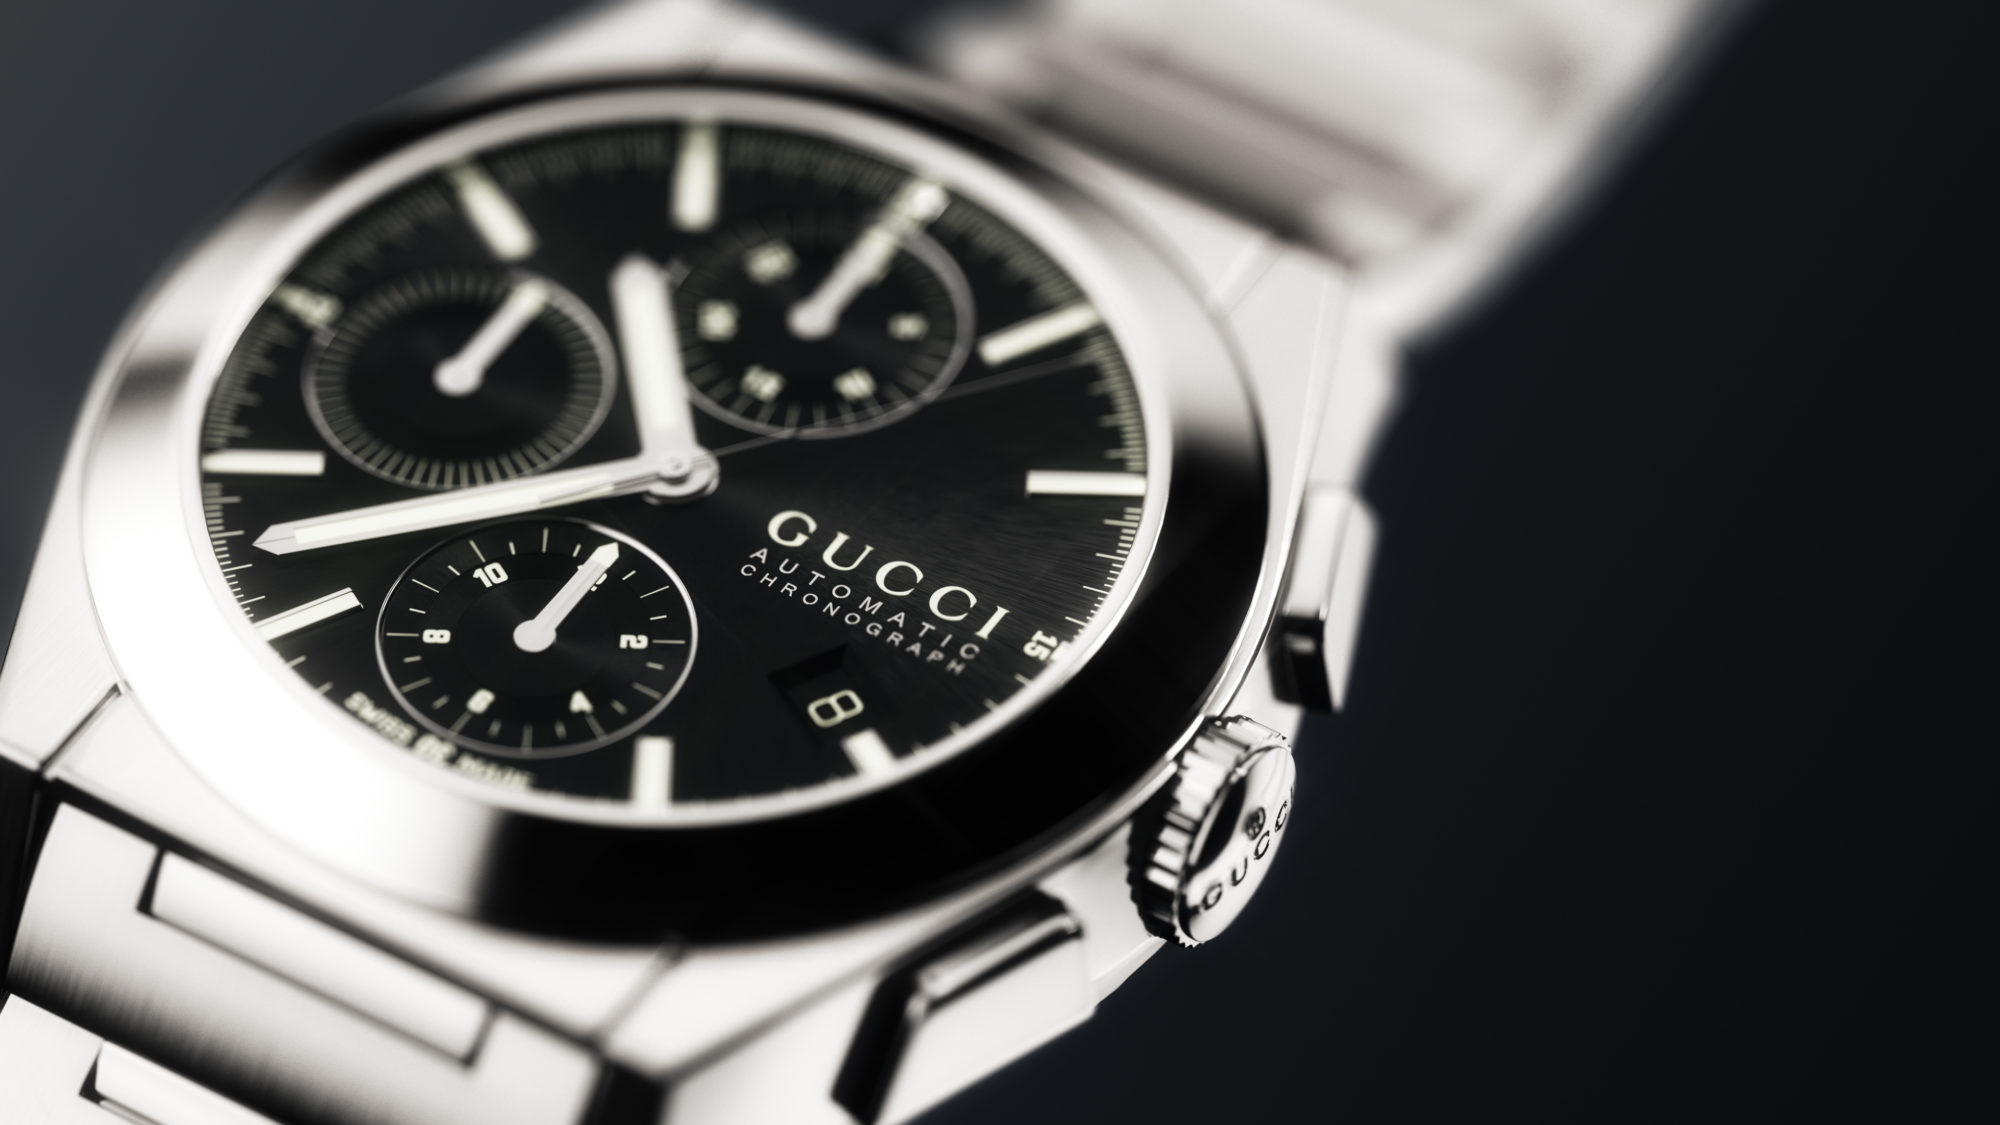 Gucci Watch Silver With Black Face